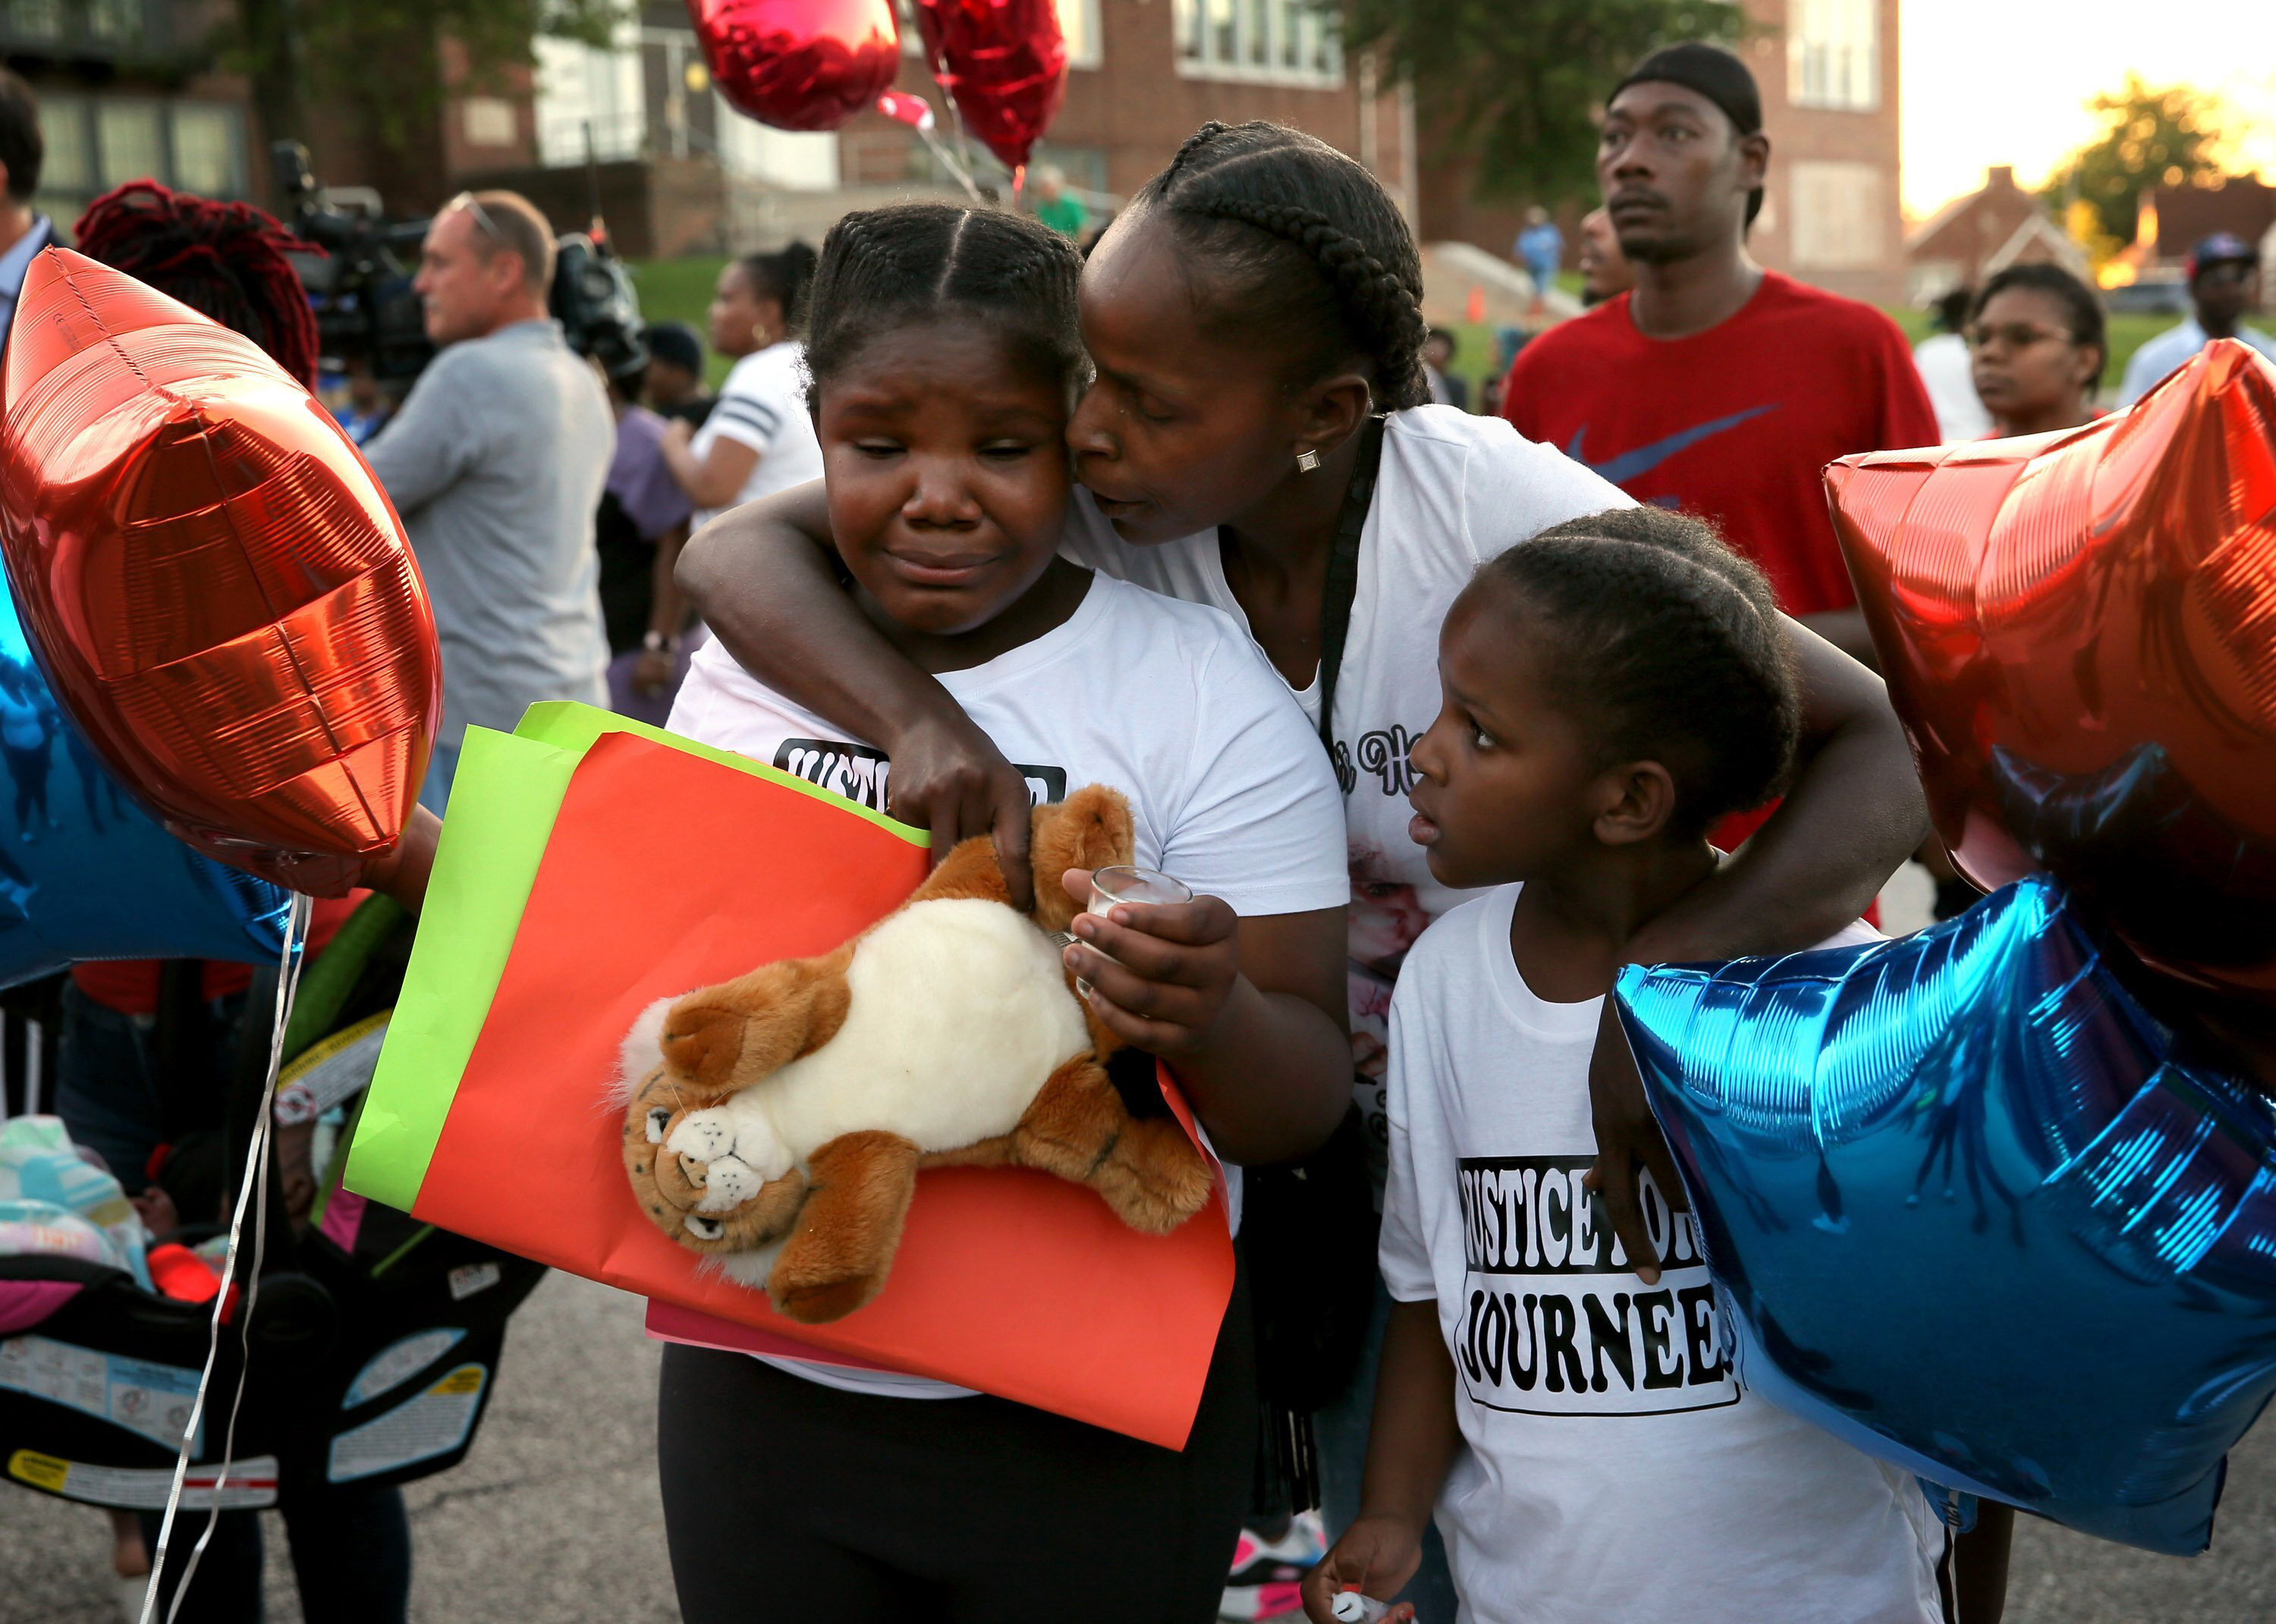 Shardae Edmondson, 11, is consoled by her mother Sharonda Edmondson and sister Zha'lea Thompson, 7, during a vigil for murdered children in St. Louis held at Herzog Elementary School in St. Louis, on Wednesday, Aug. 28, 2019. Shardae and Zha'lea are sisters of 8-year-old Jurnee Thompson who was killed by a stray bullet last Friday night. (David Carson/St. Louis Post-Dispatch via AP)